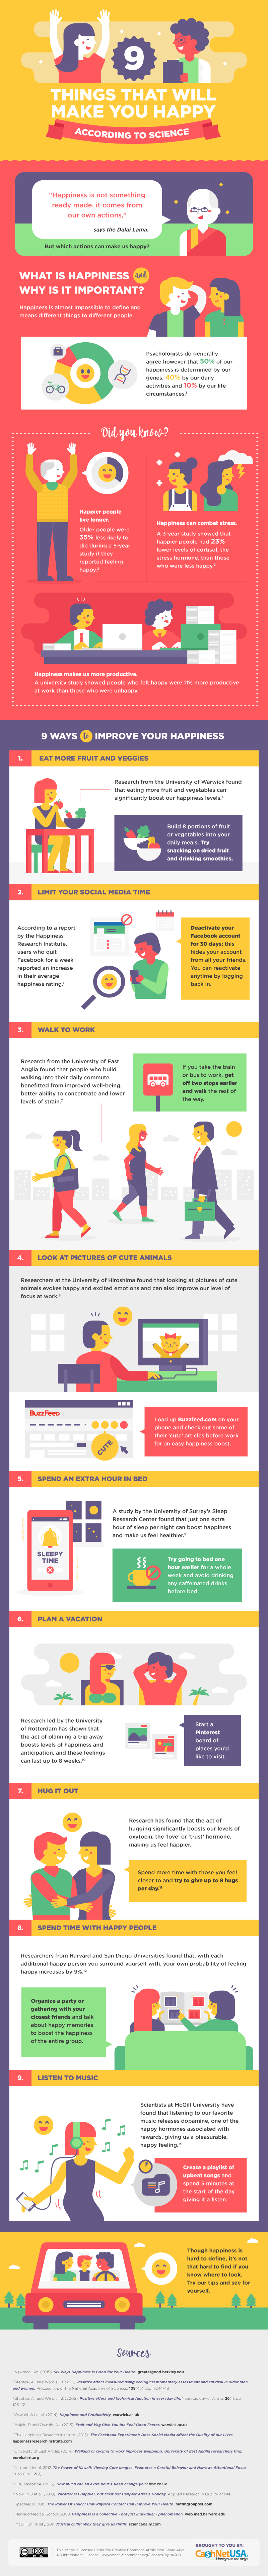 9 Steps To Becoming A Happy Person - Infographic